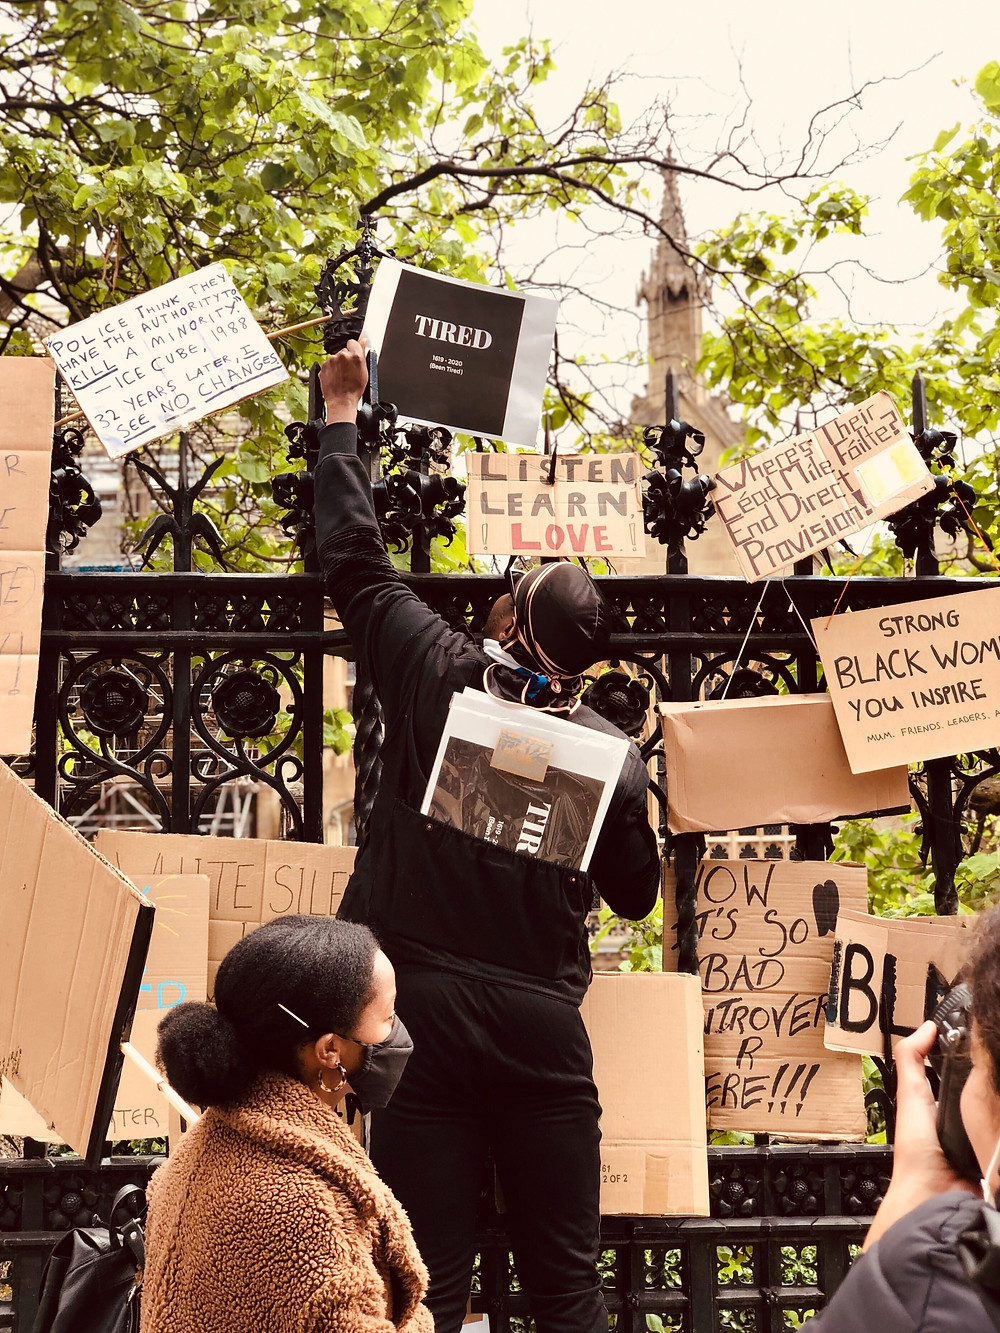 Image of Black Lives Matter protesters standing in front of a gate covered by placards